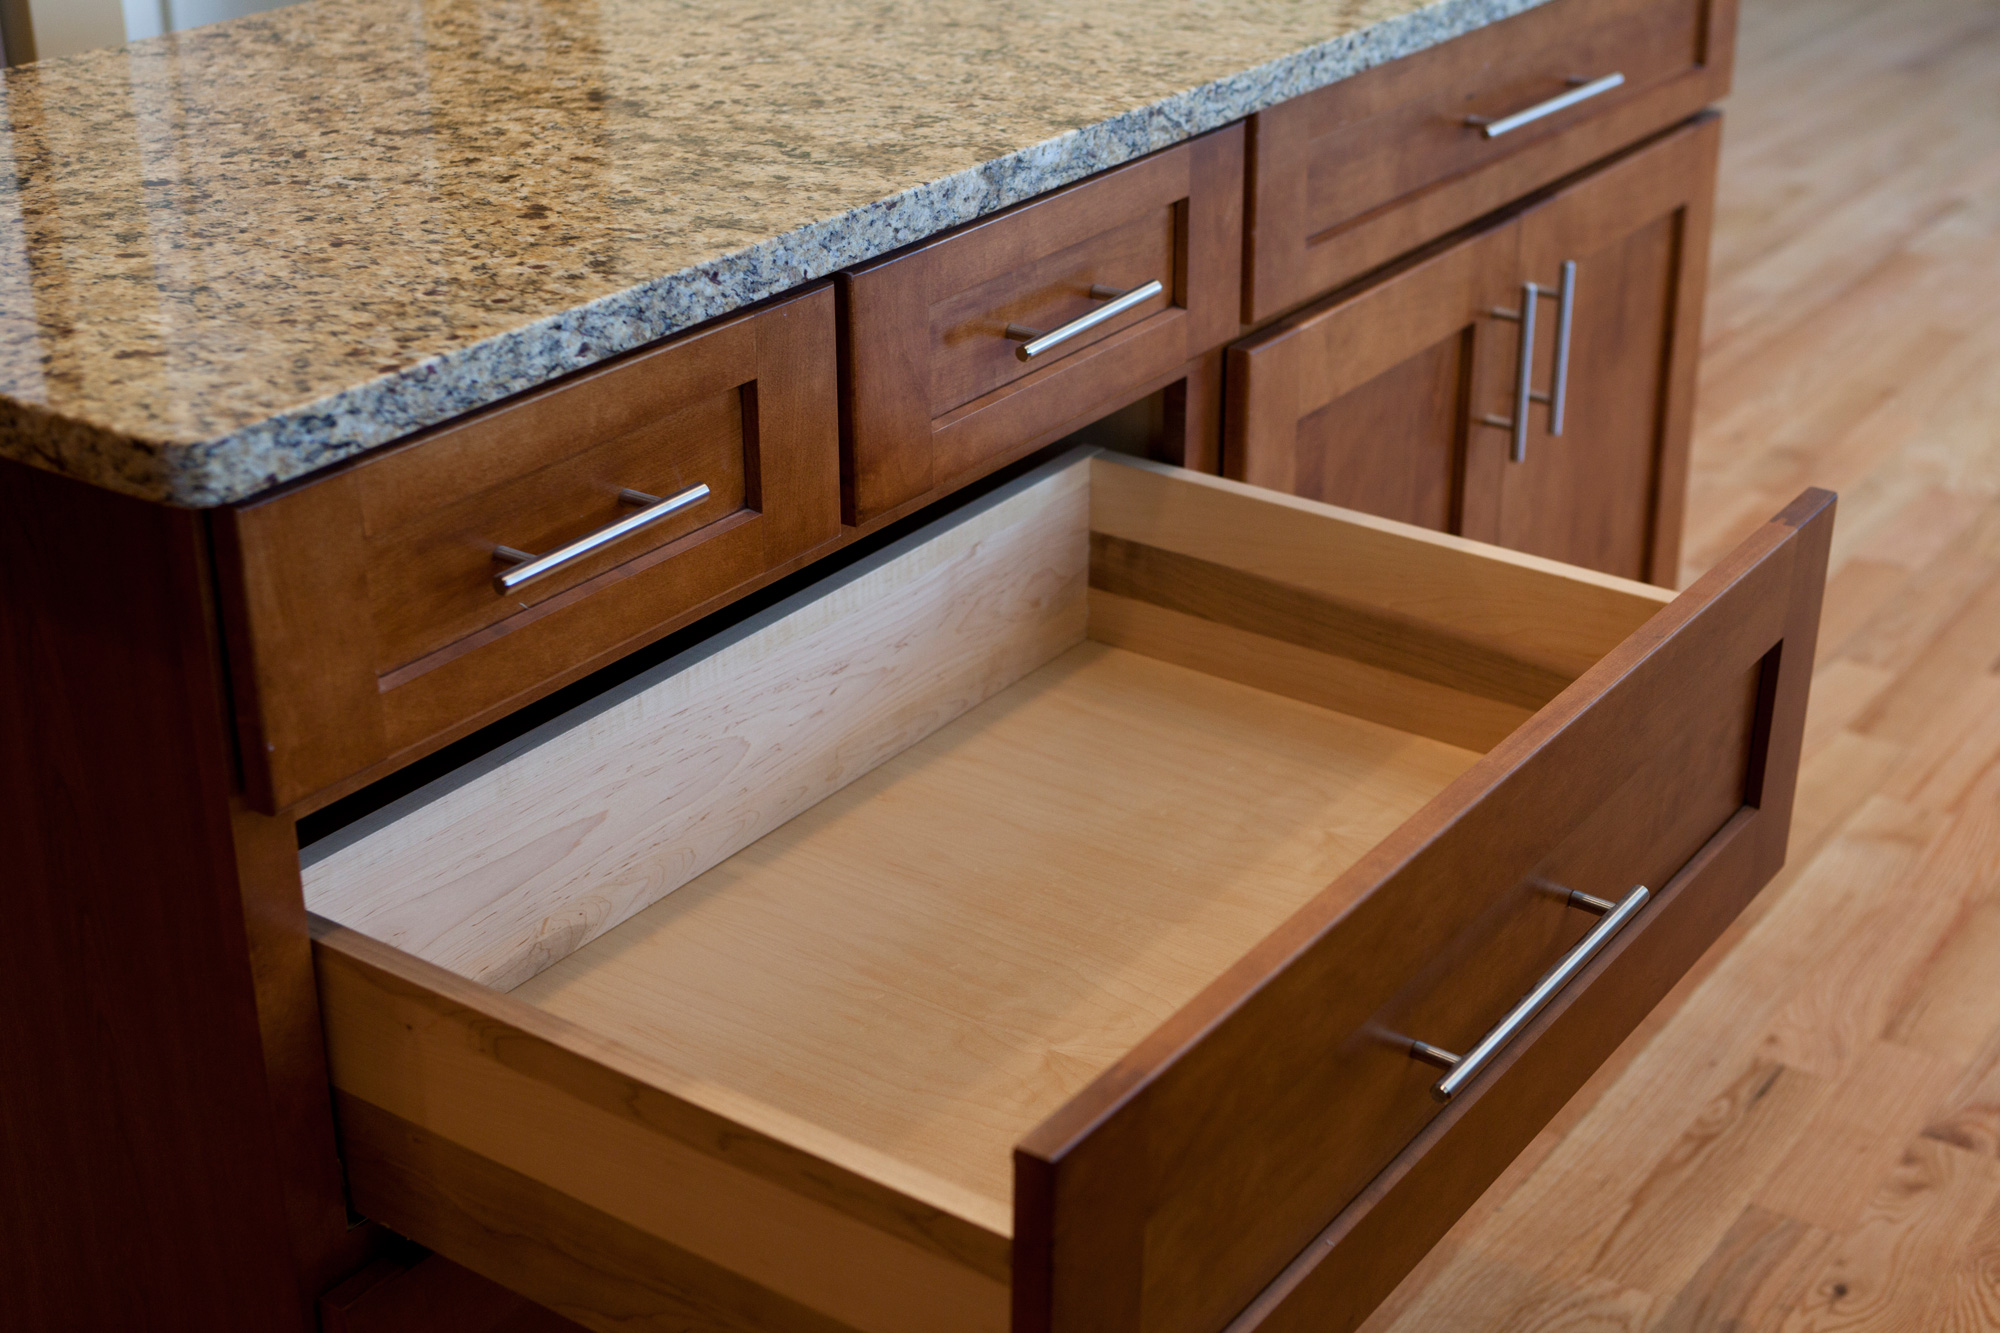 Kitchen Drawers kitchen drawers ~ picgit